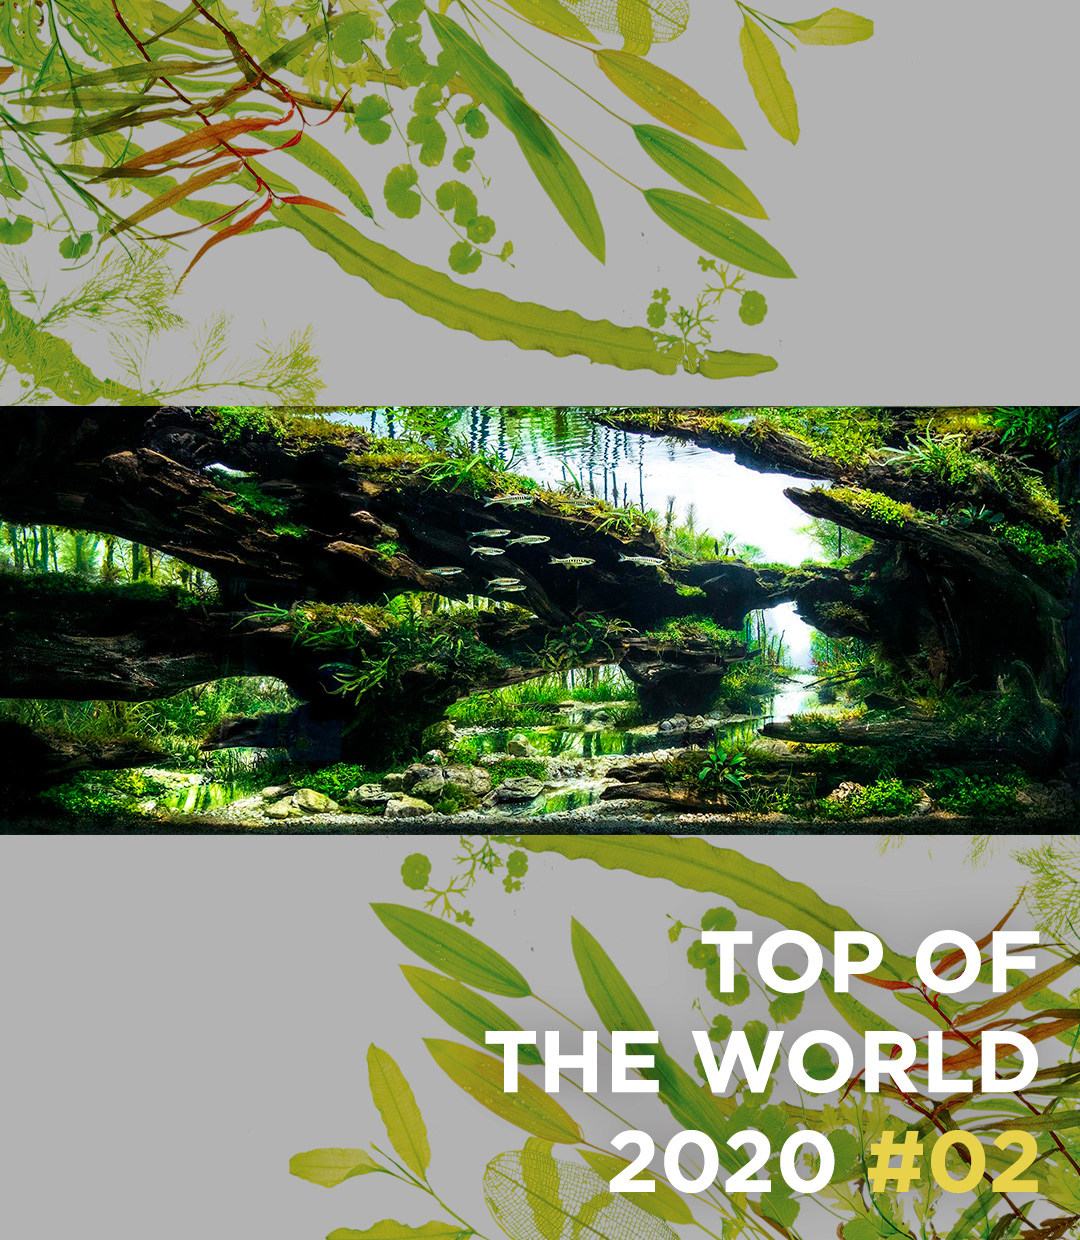 TOP OF THE WORLD 2020 #02 Steven Chong